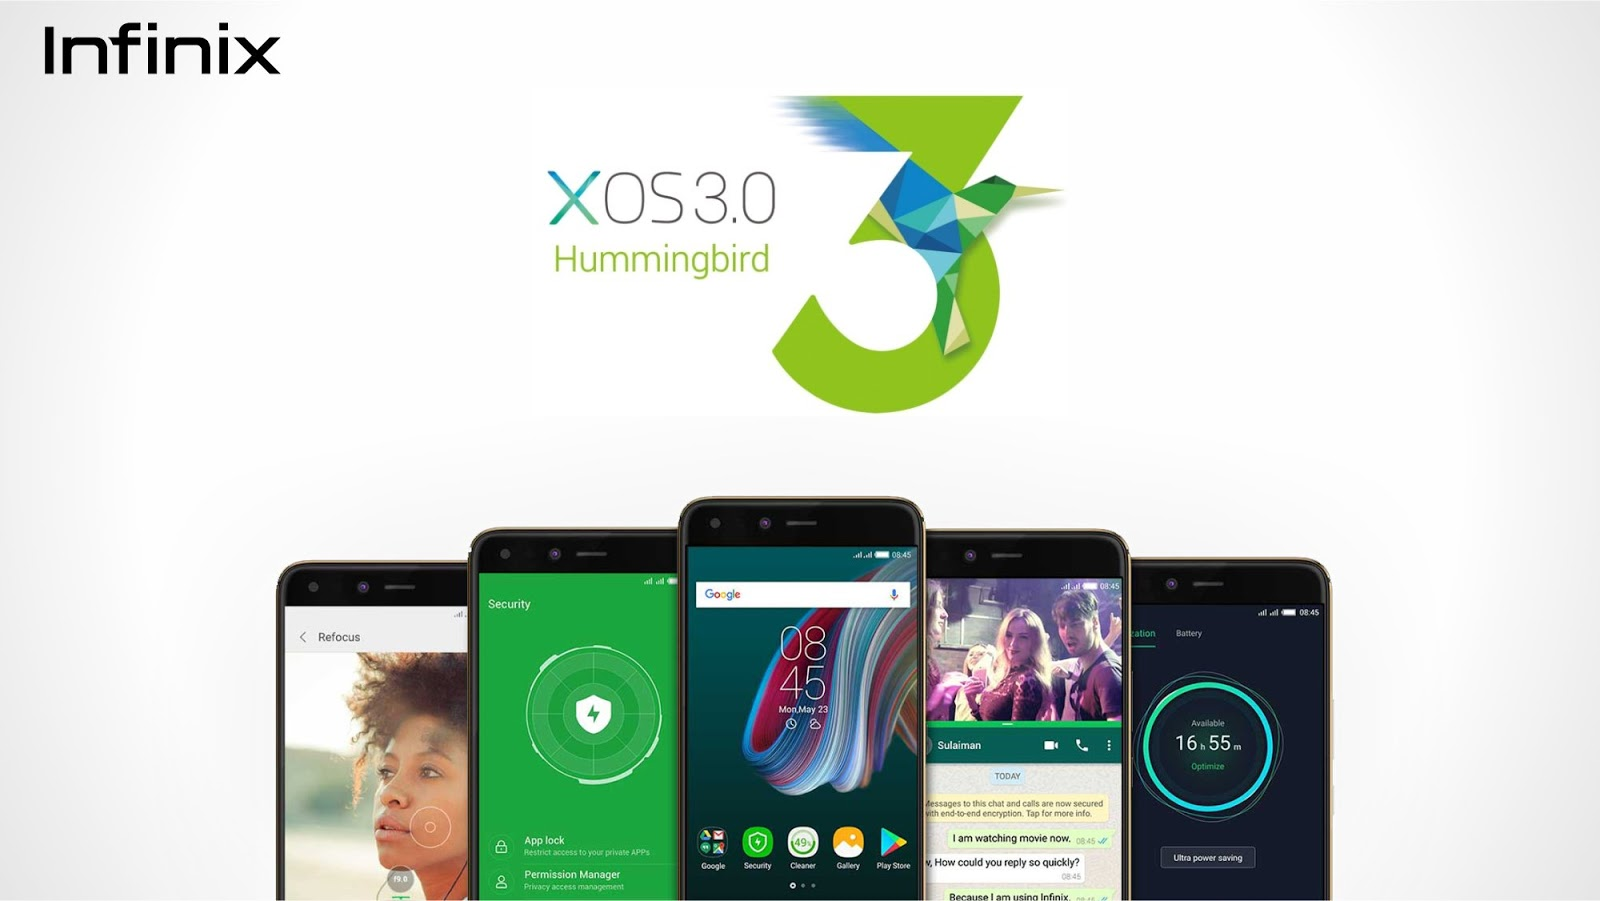 Infinix XOS 3 0 Hummingbird: All you need to know (Review